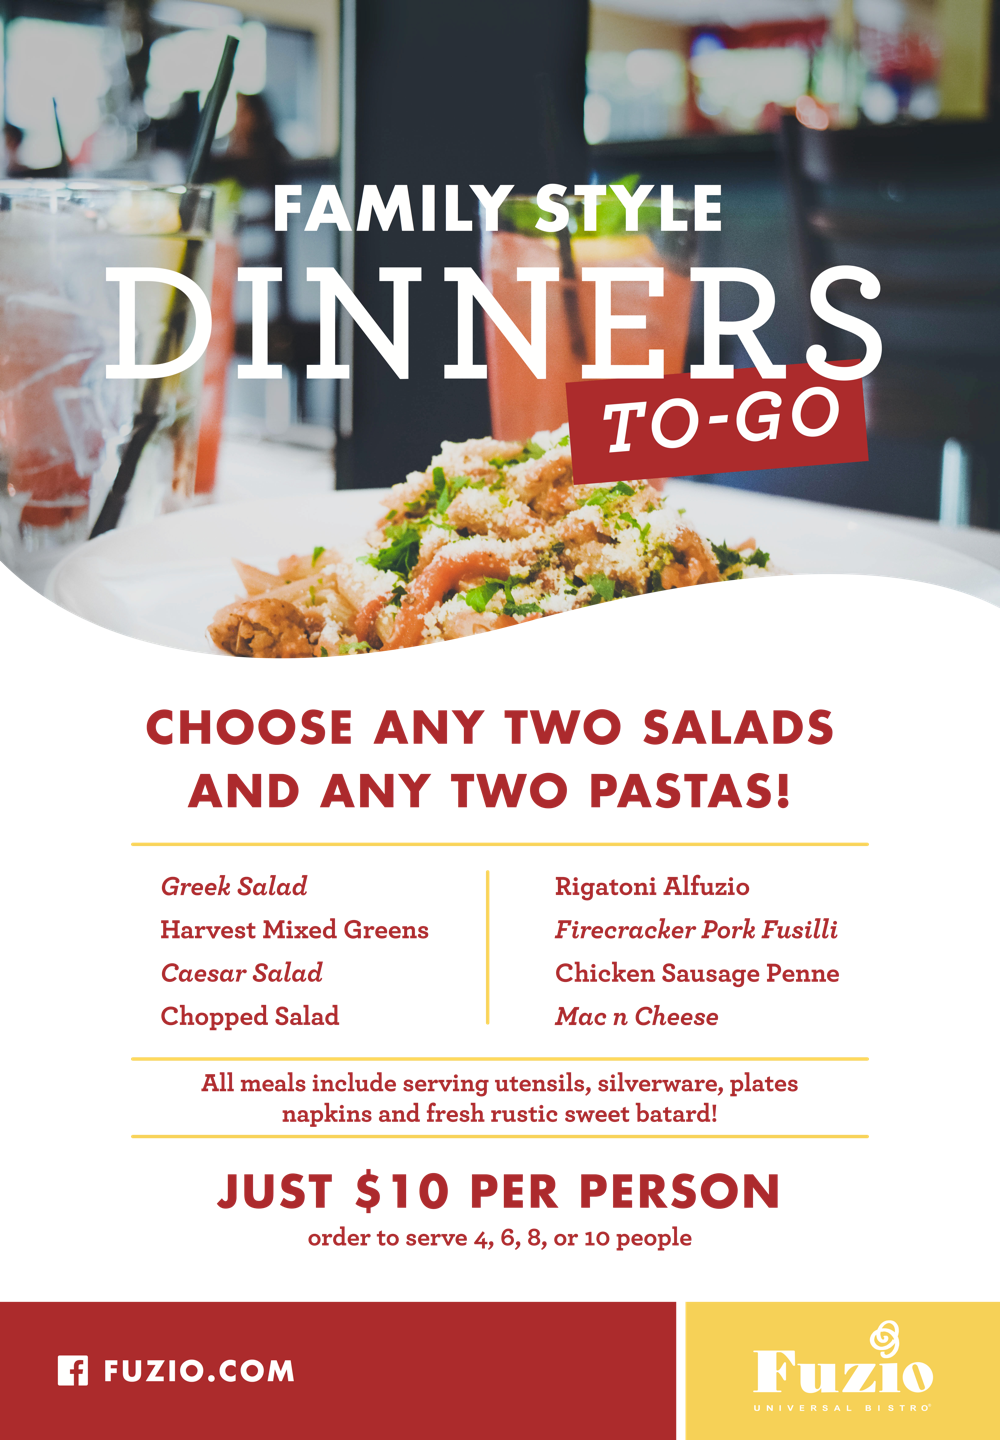 Family Style Dinners to-go